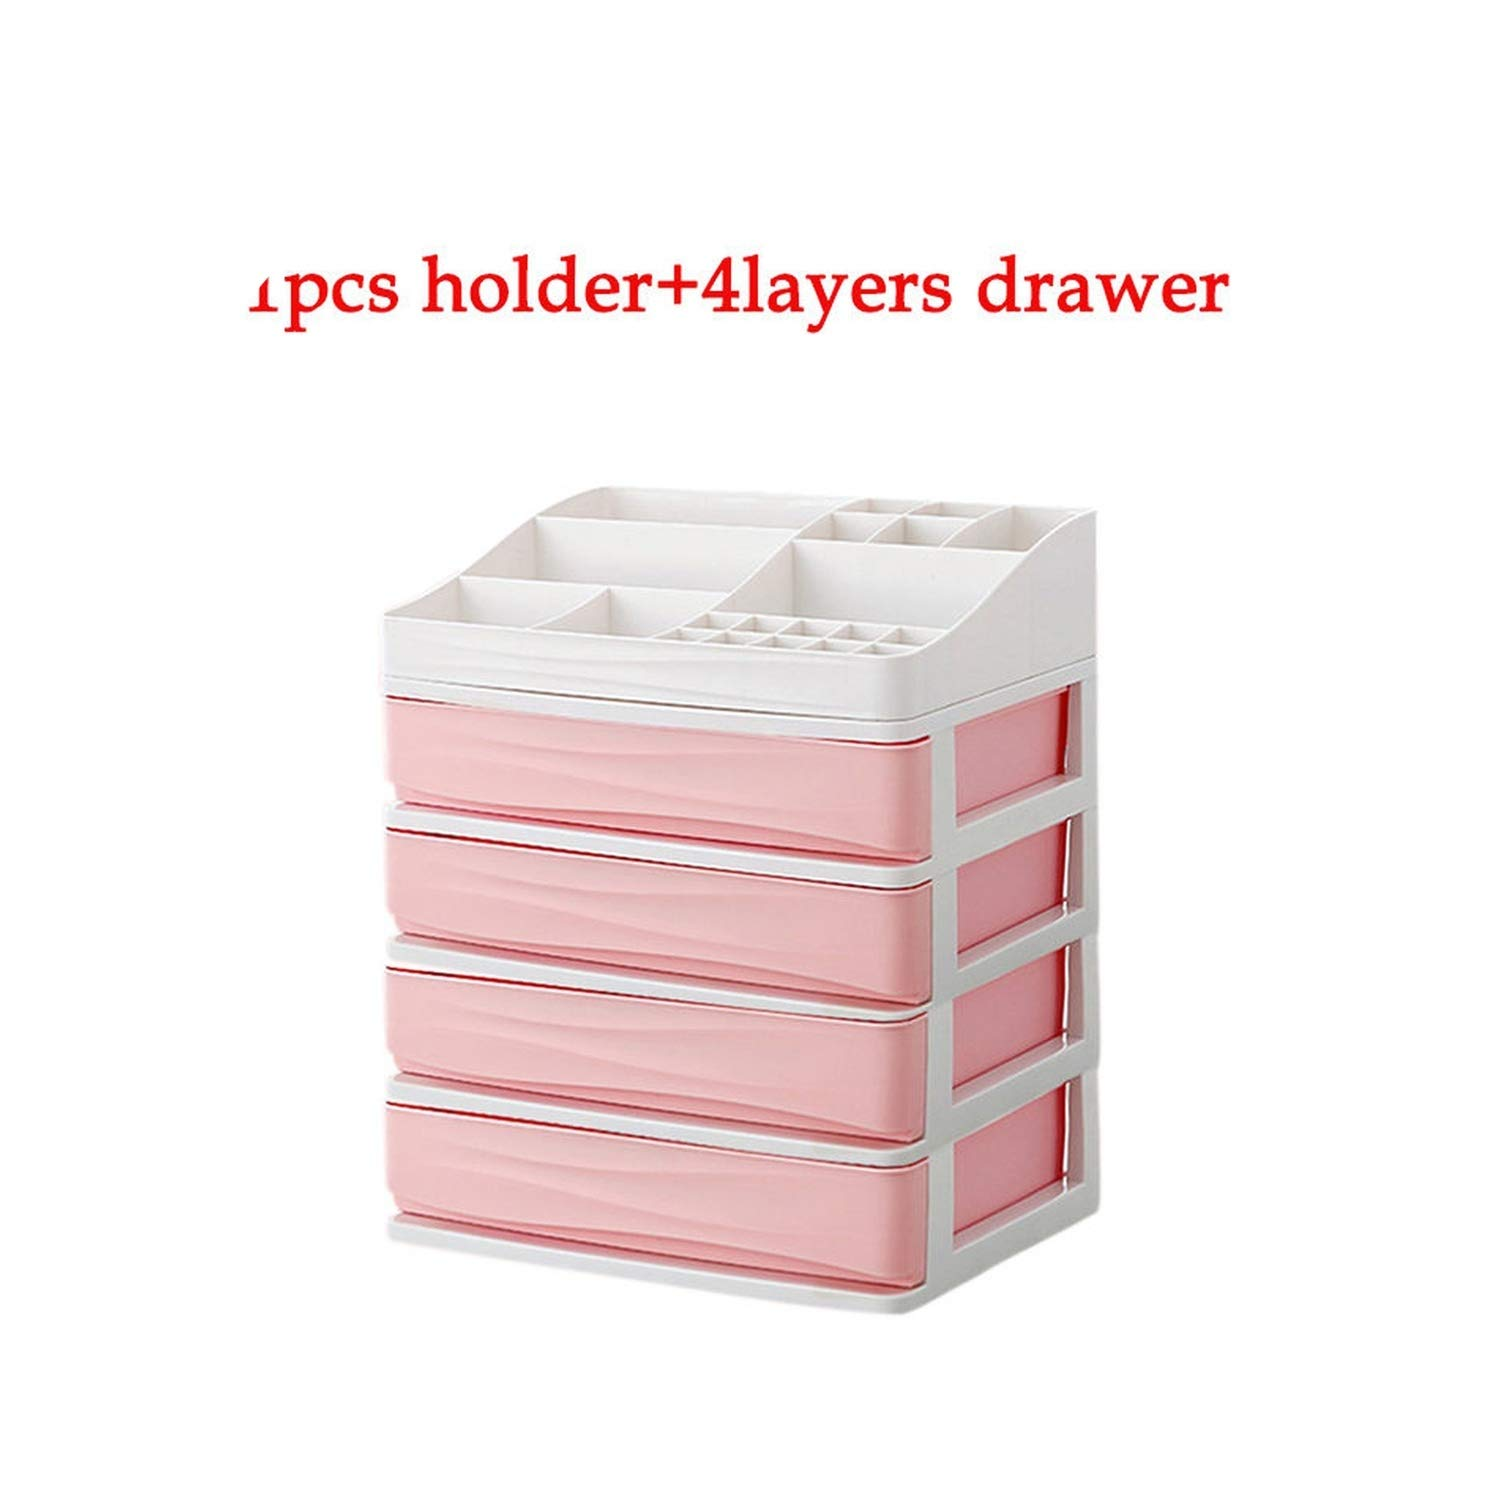 Ubiquity-Shop Plastic Cosmetic Drawer Makeup Organizer Makeup Storage Box Container Nail Casket Holder Desktop Sundry Storage Case,1holder 4layer4-pink